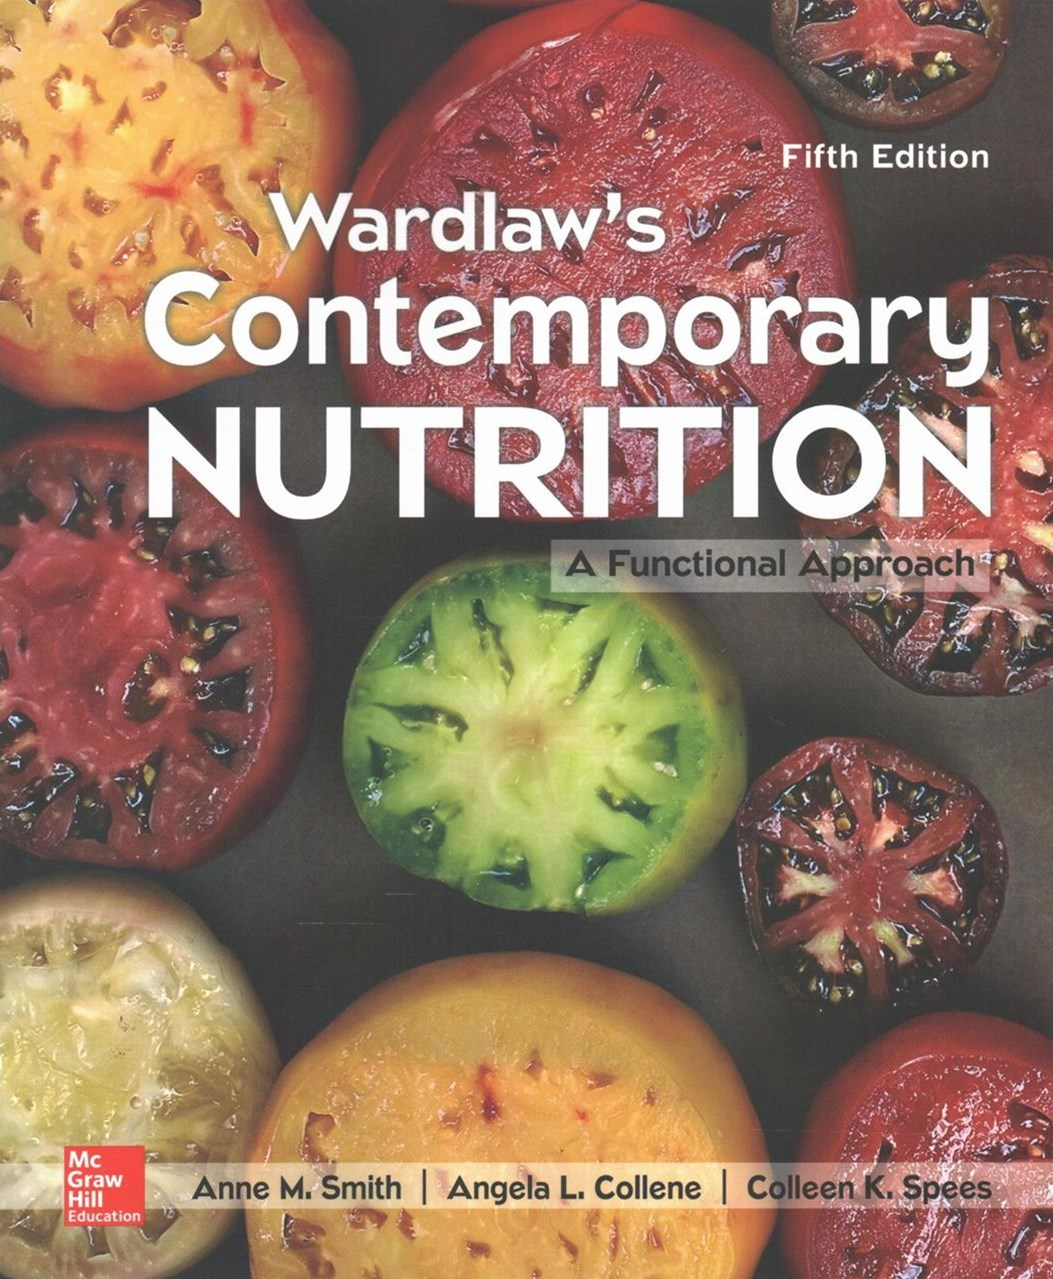 Wardlaw's Contemporary Nutrition